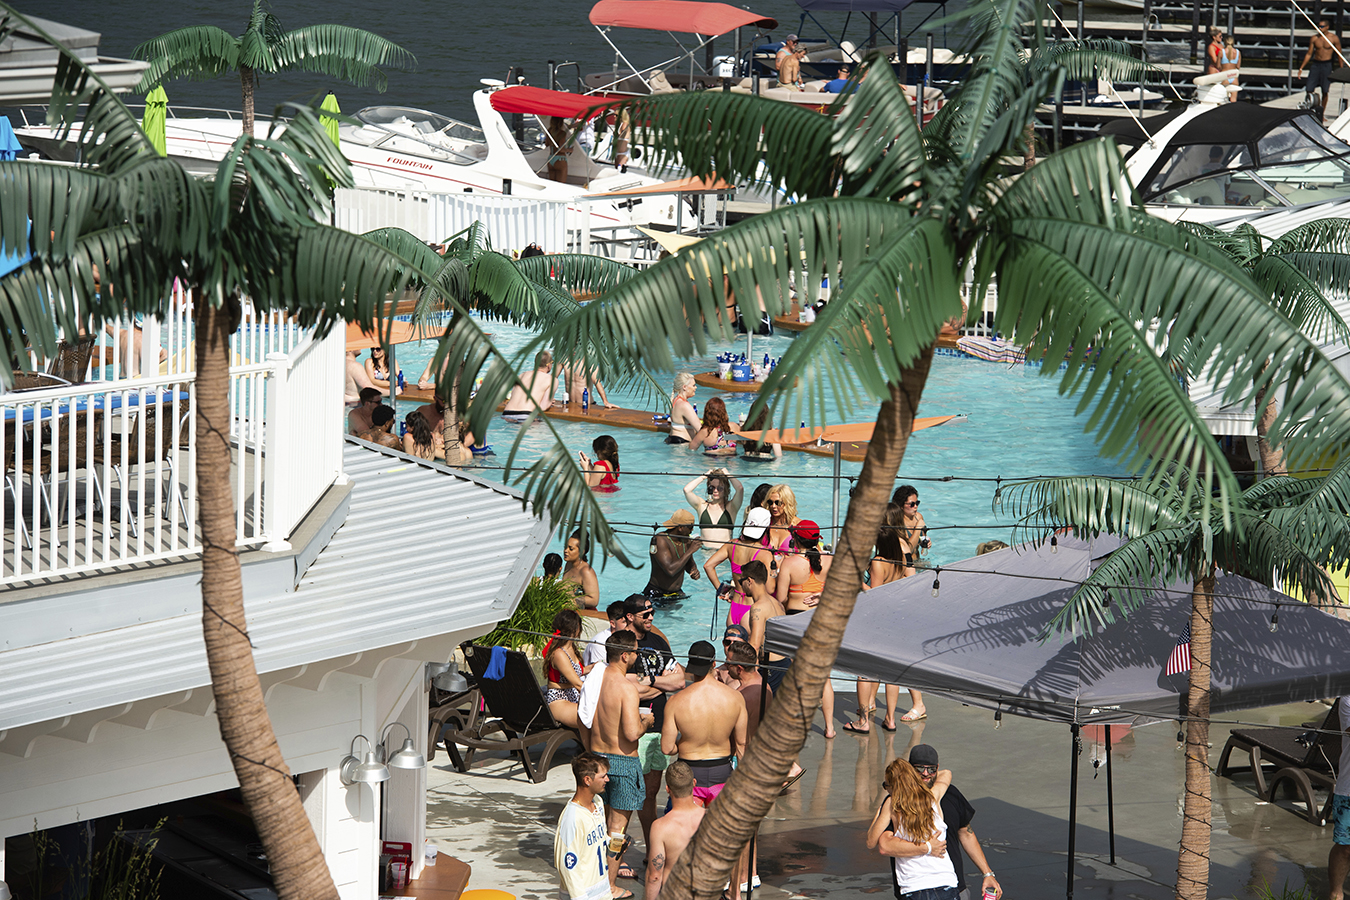 At Lake Of The Ozarks, It's (Almost) Business As Usual, Despite The Coronavirus